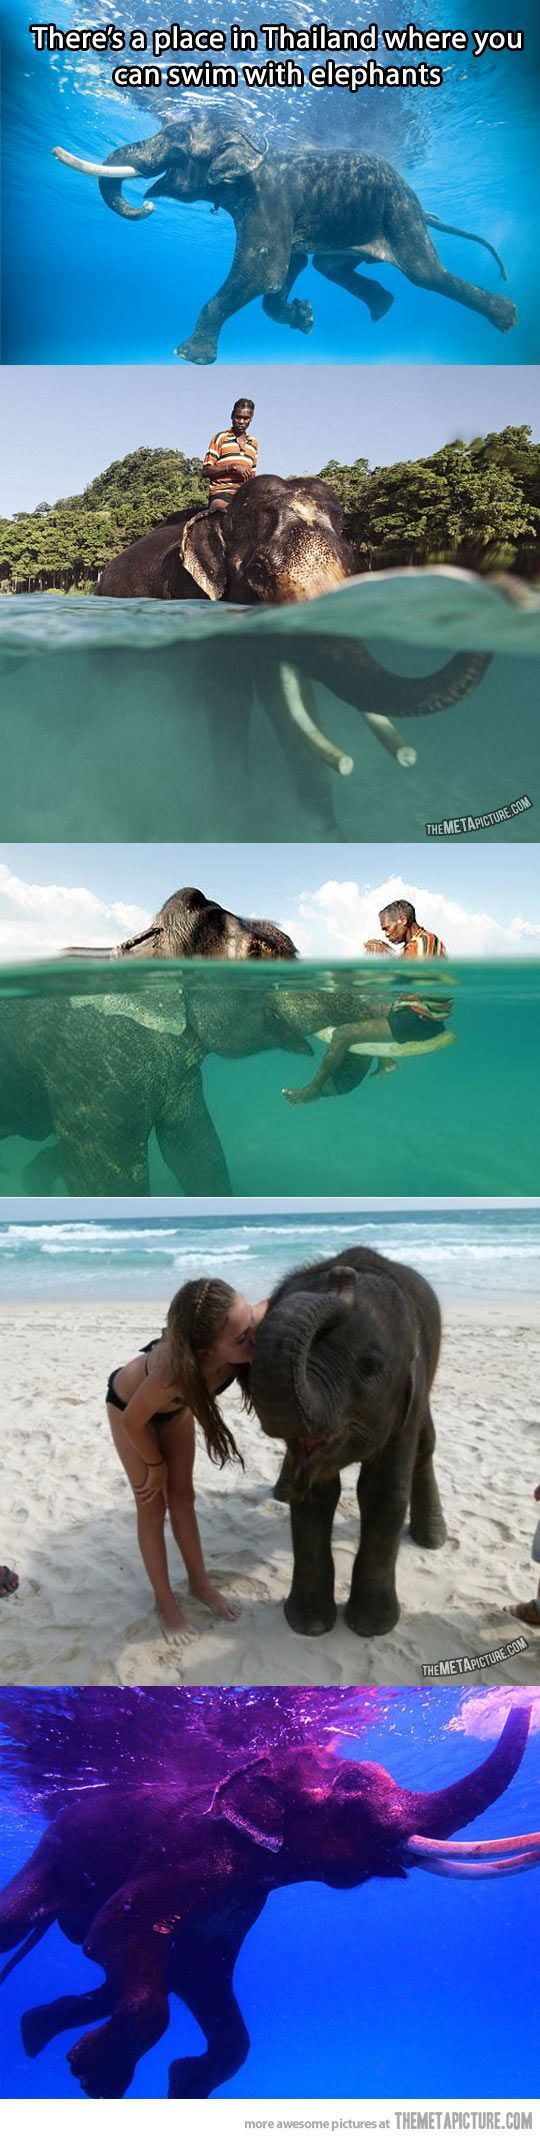 In Thailand there is a place that you can   swim with elephants! Bucket list! GOING THERE FOR SURE